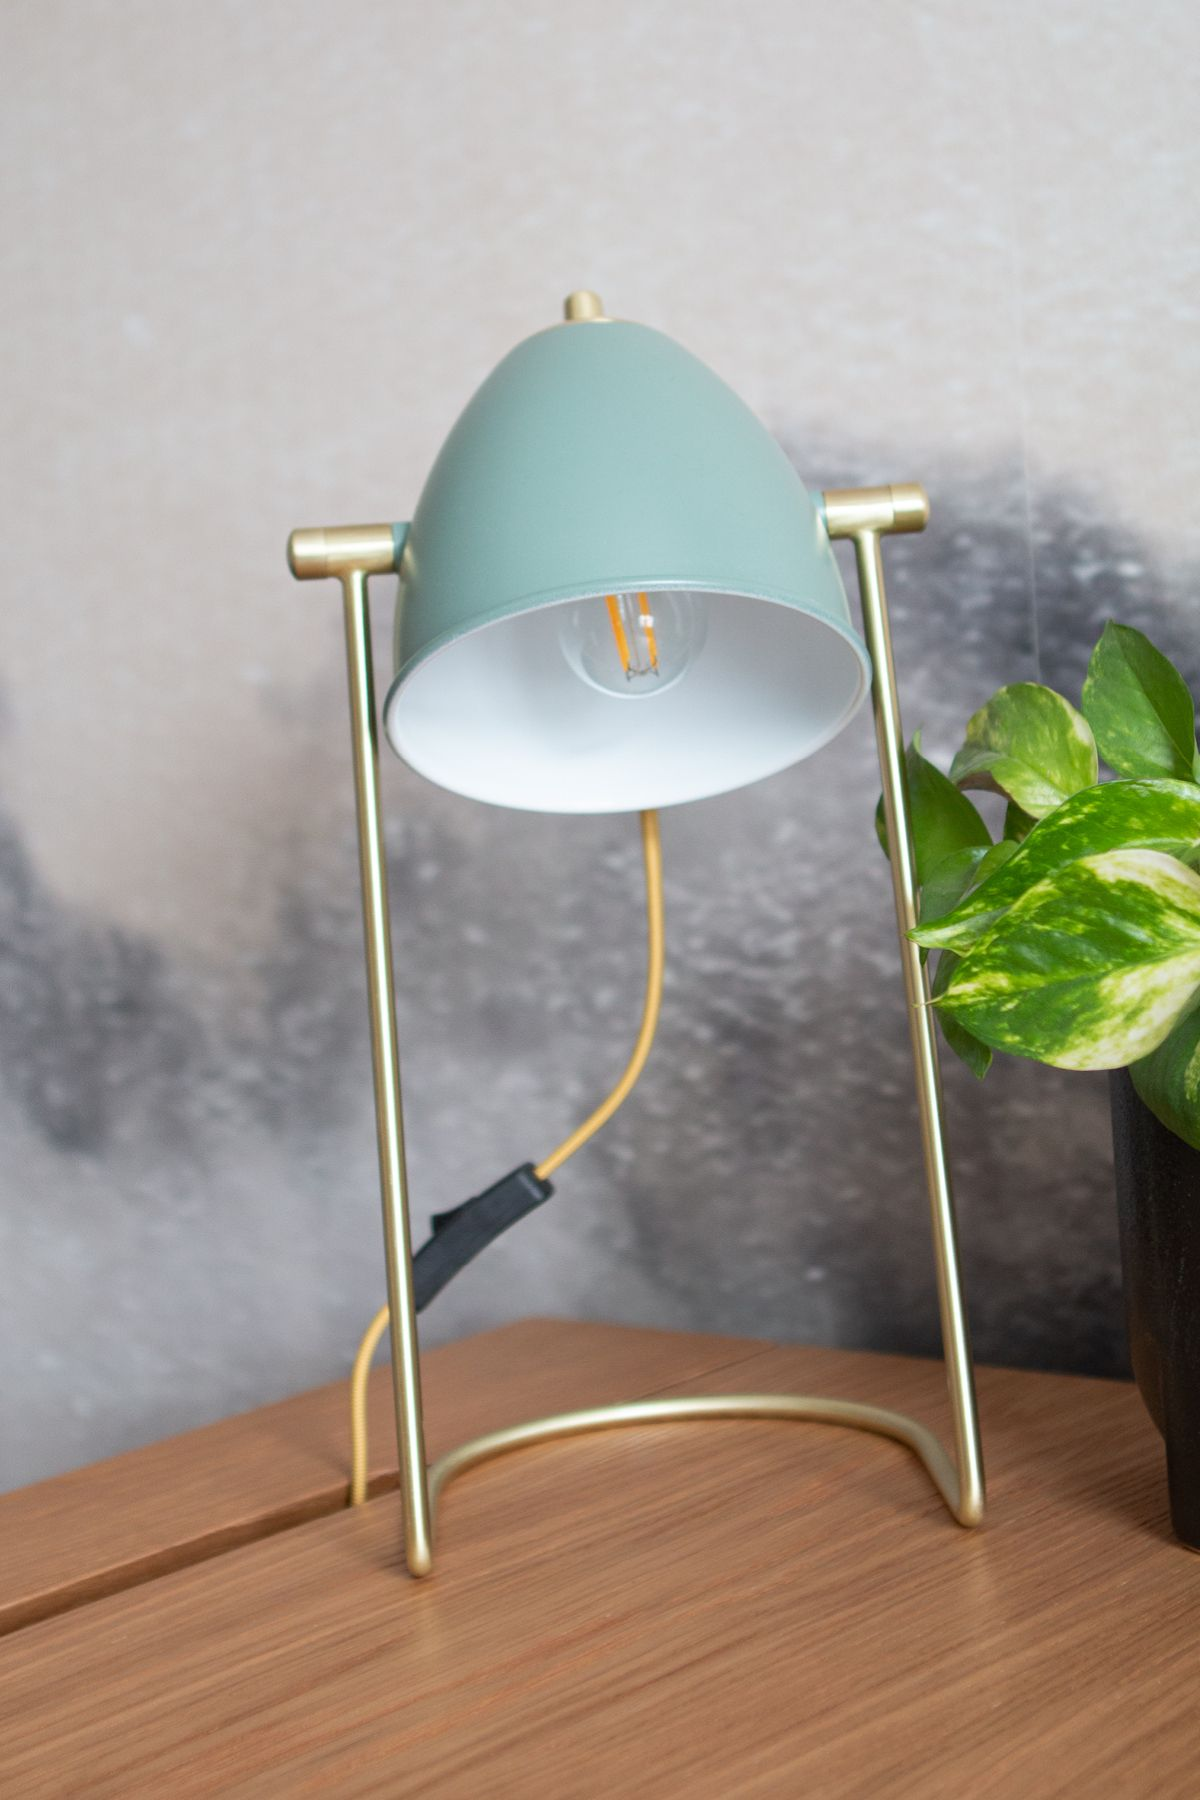 Fila Green Table Lamp In 2020 Green Table Lamp Table Lamp Lamp